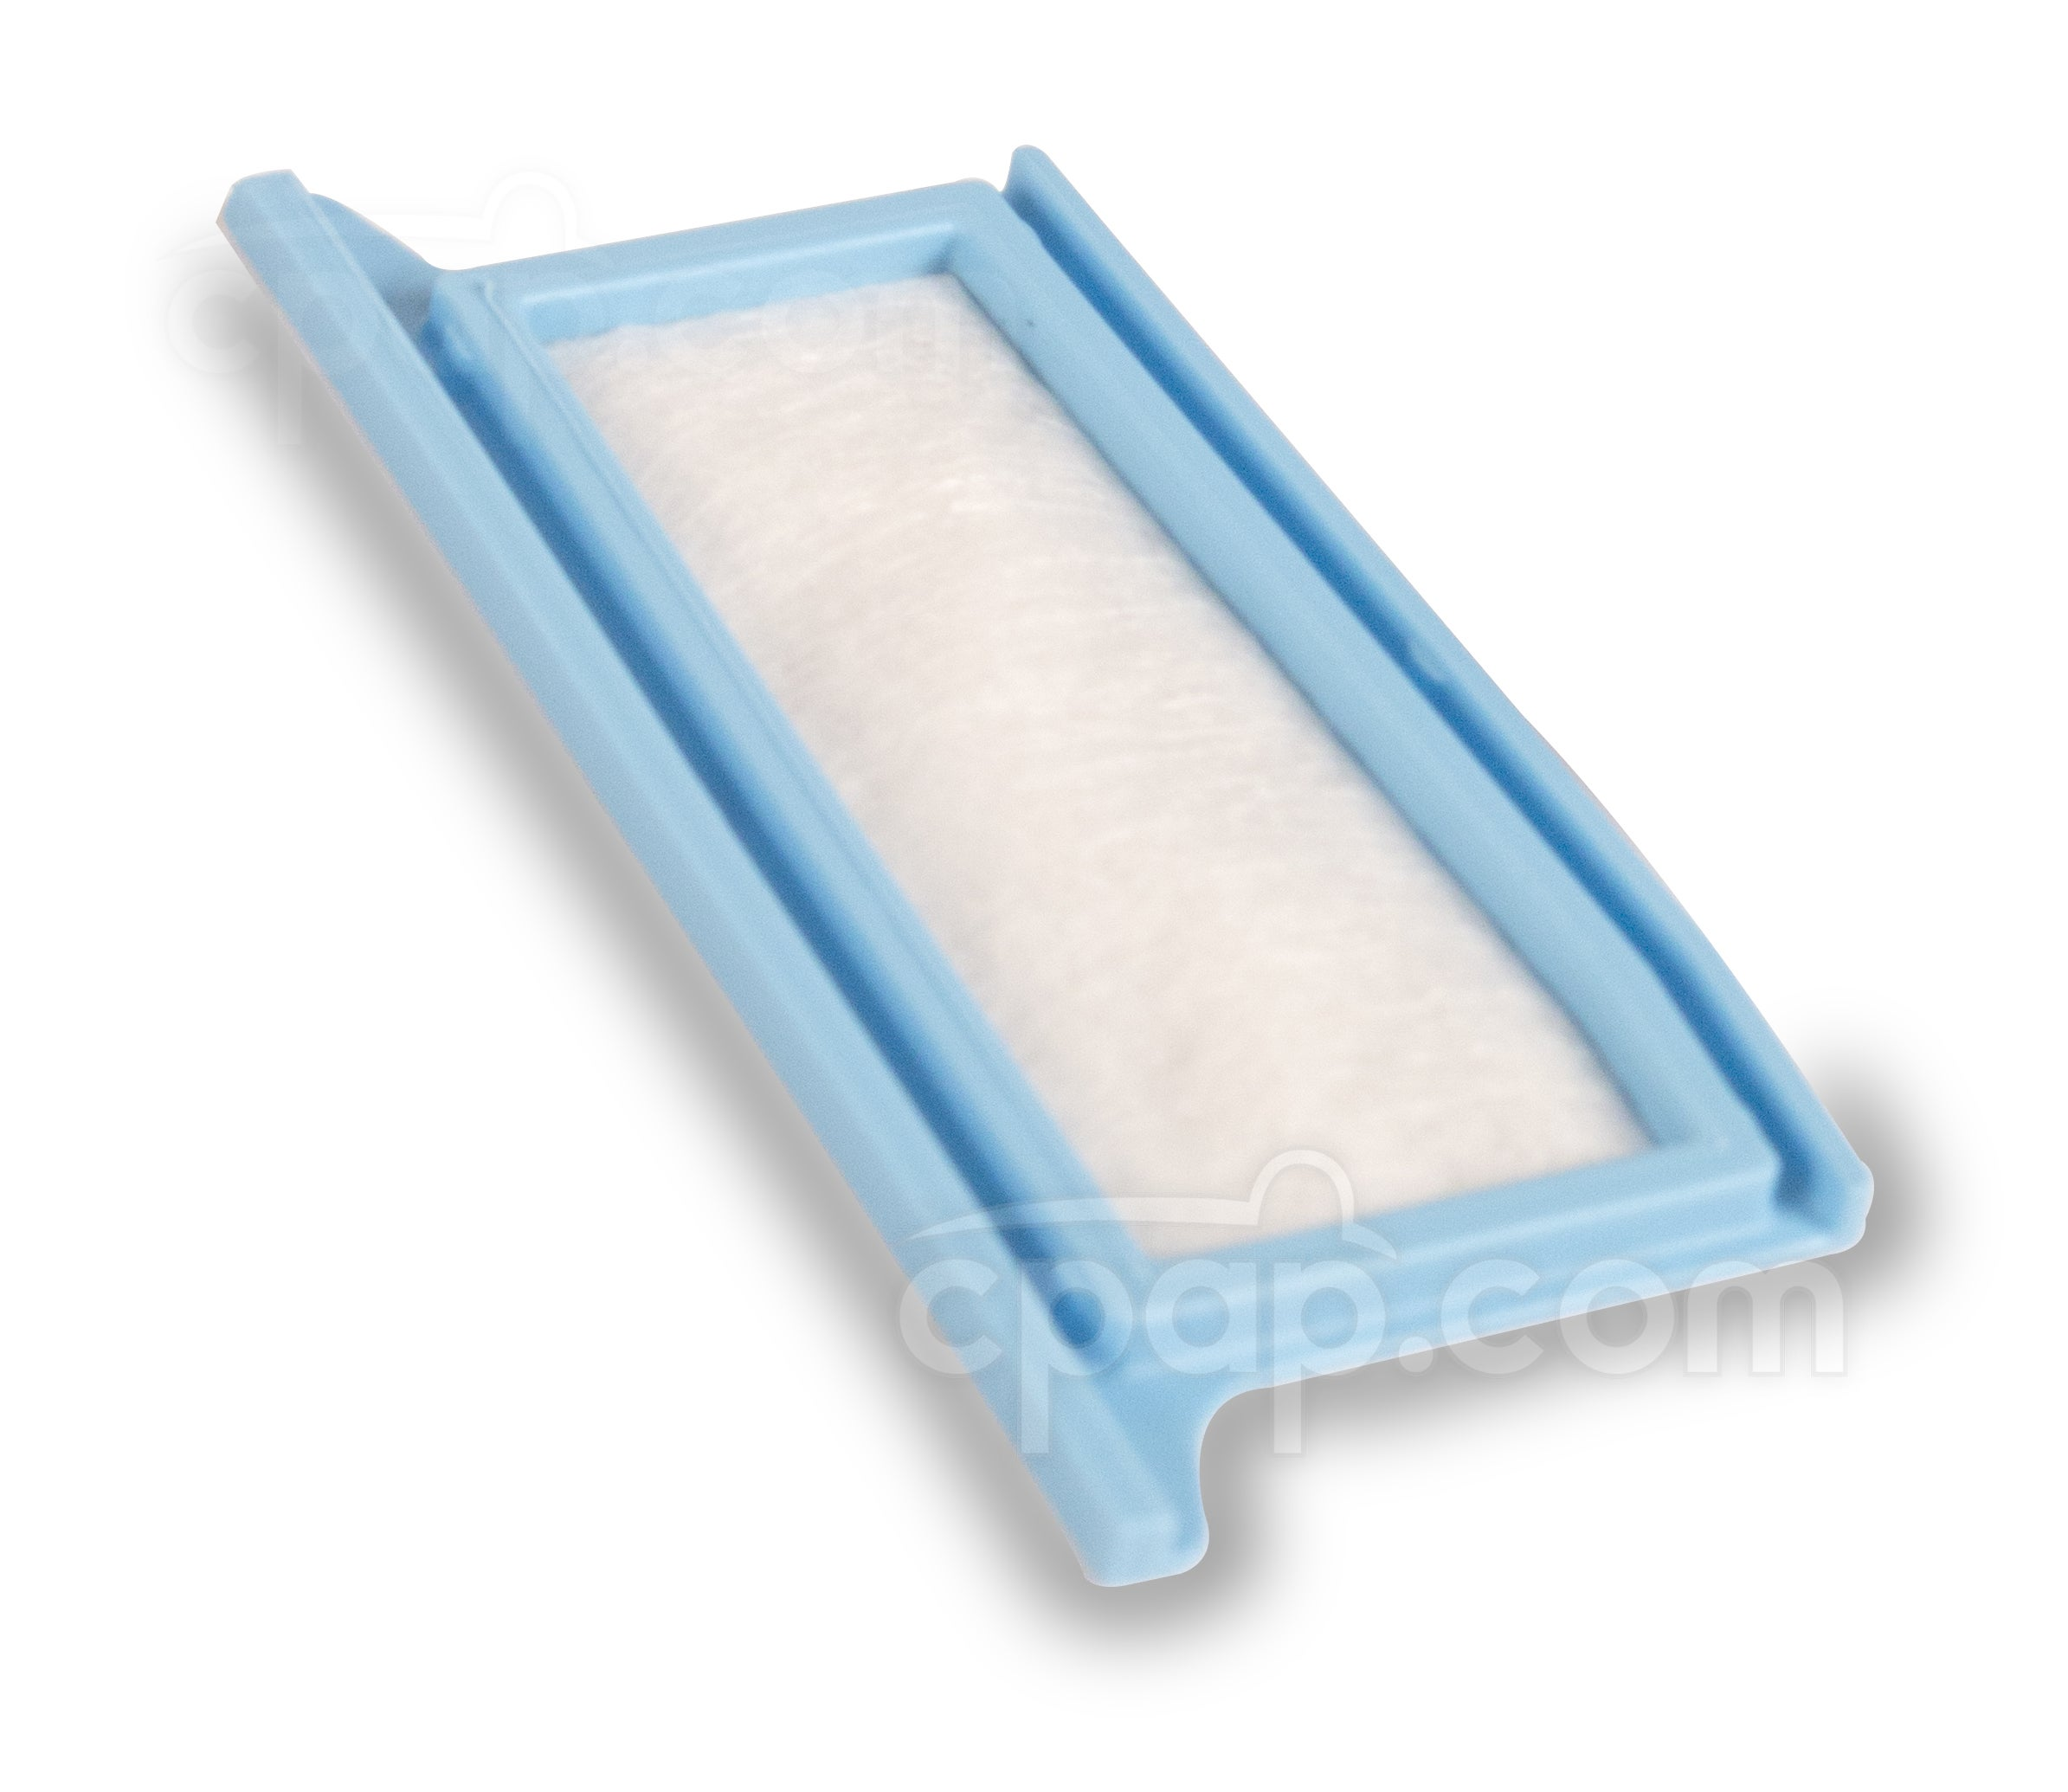 Disposable Filter for DreamStation Machines